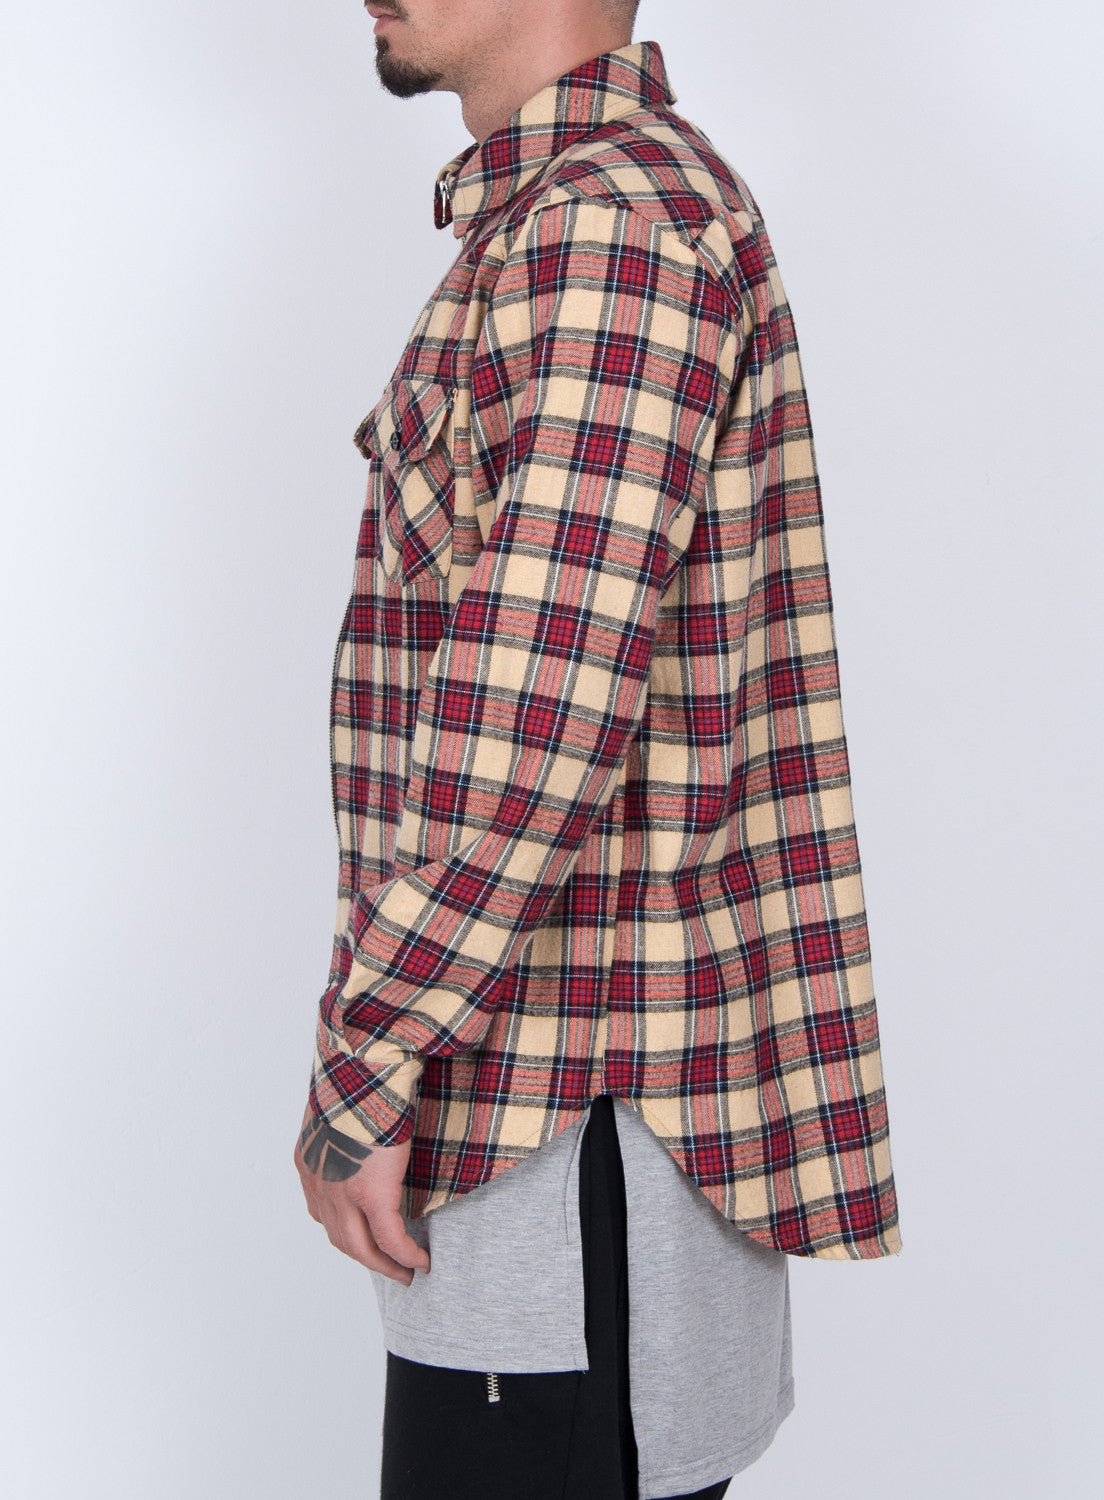 BEIGE TARTAN PLAID ZIP UP FLANNEL SHIRT